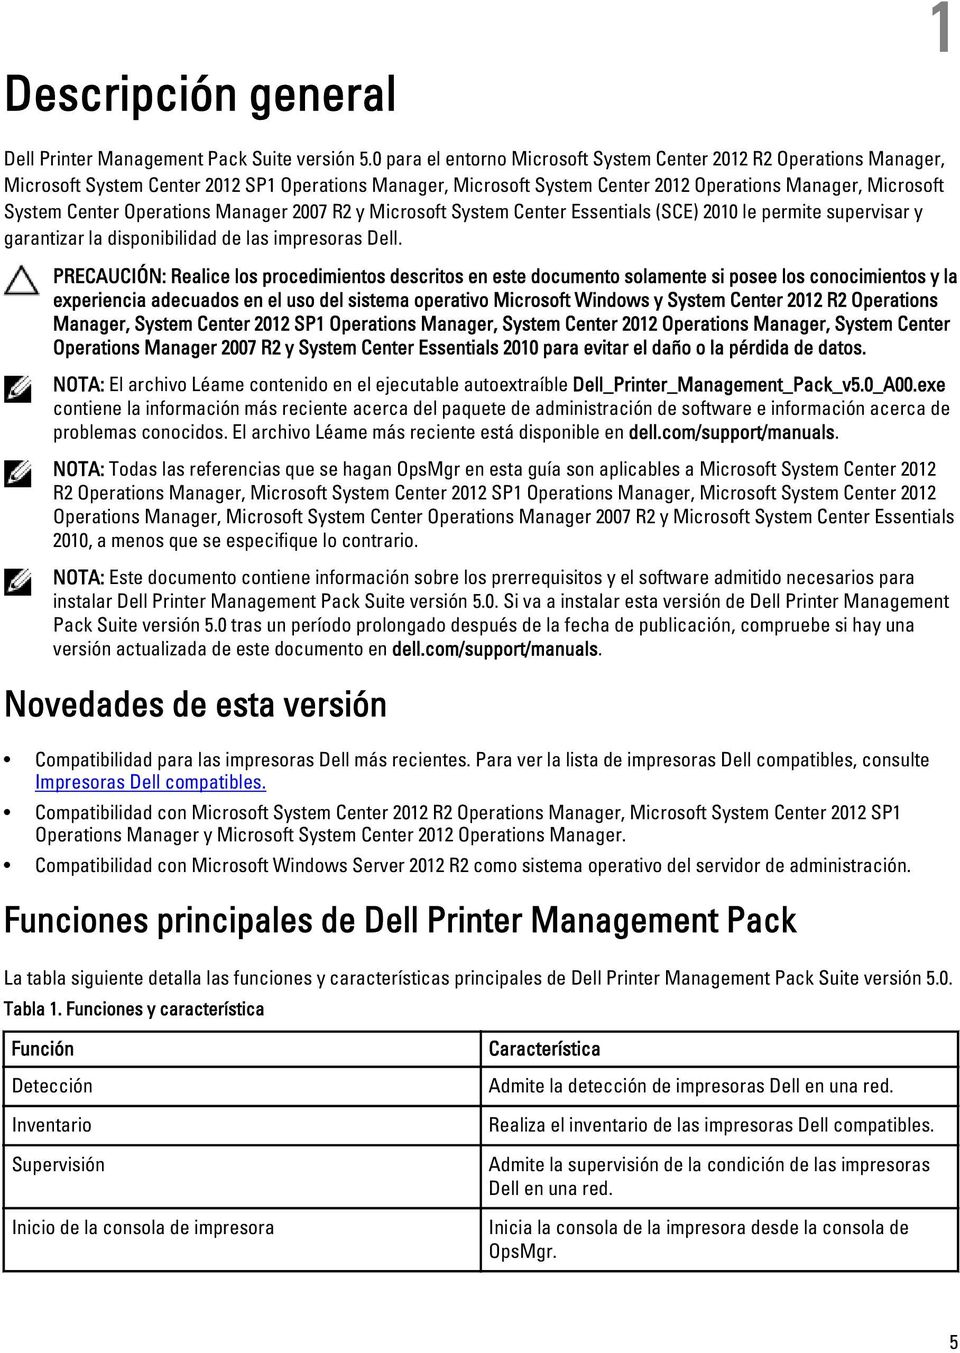 Operations Manager 2007 R2 y Microsoft System Center Essentials (SCE) 2010 le permite supervisar y garantizar la disponibilidad de las impresoras Dell.